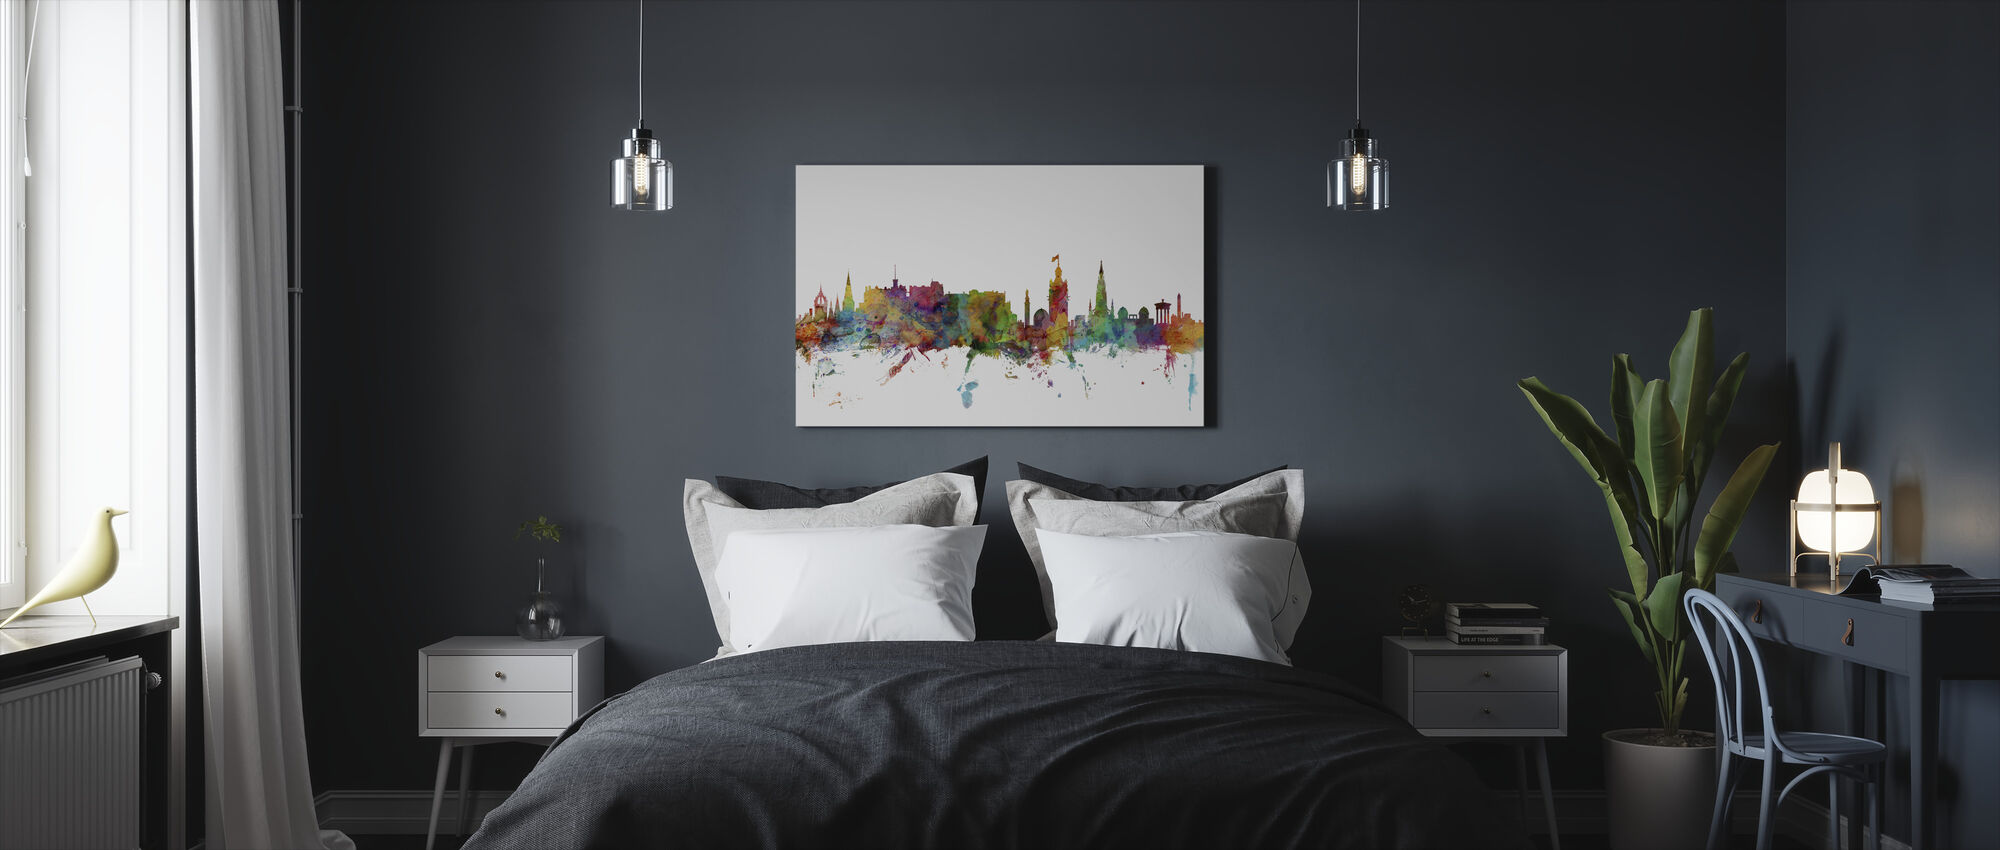 Edinburgh Skyline - Canvas print - Bedroom